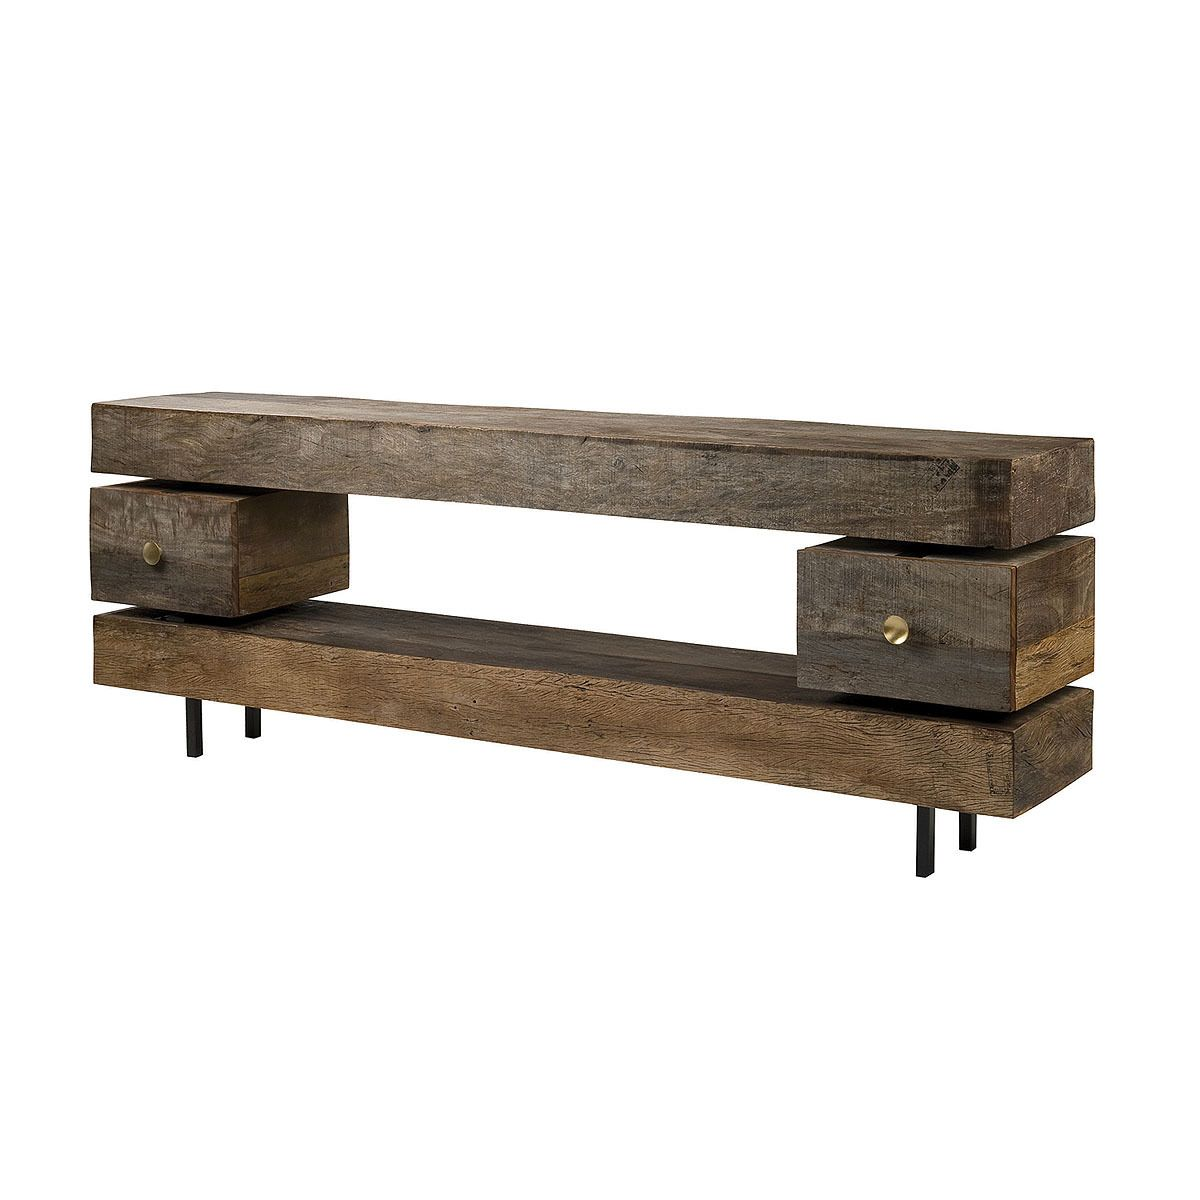 Dillon Reclaimed Wood Console Table   Console tables, Consoles and Woods